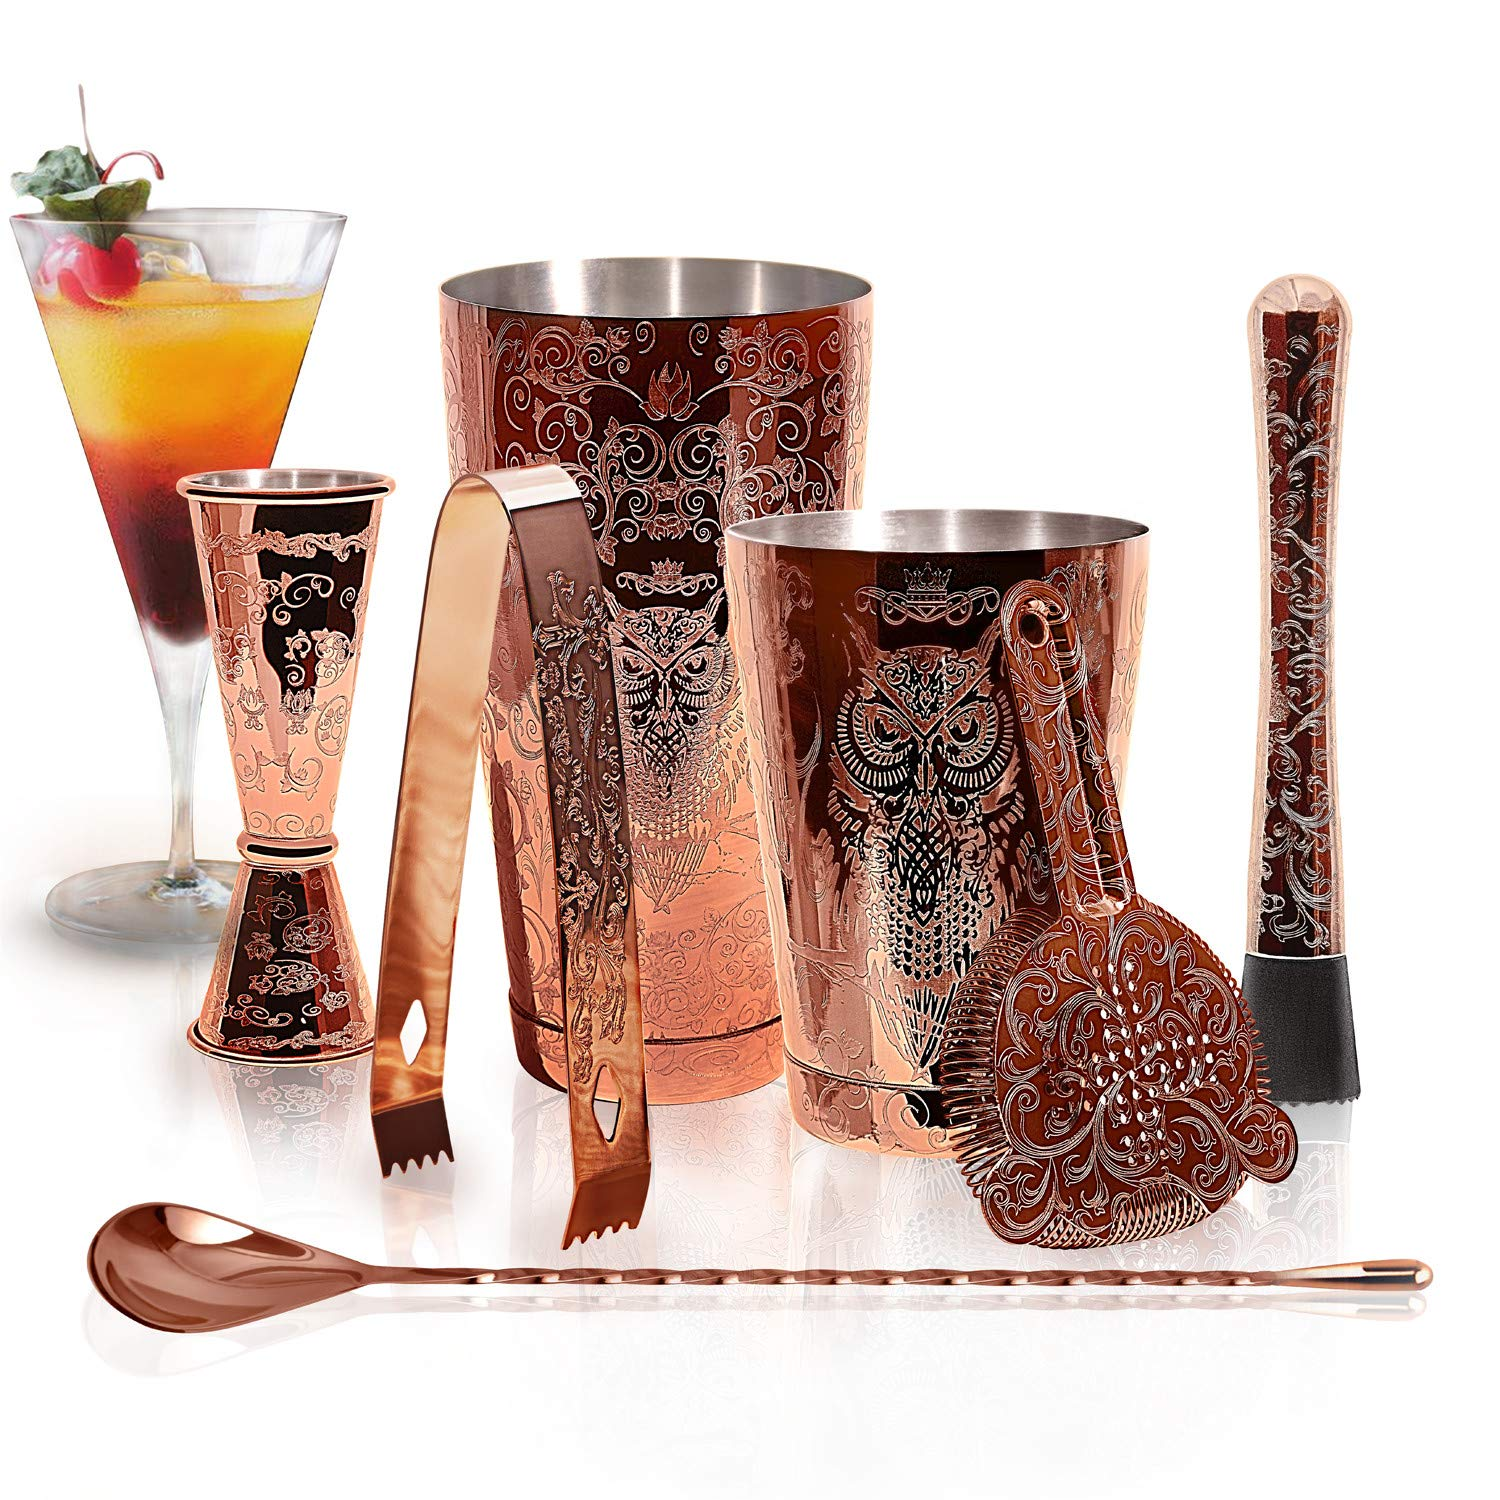 SKY FISH Bartender Kit Cocktail Shaker Set-6 Pieces Stainless Steel Copper Plated Etching Bar Tools With Boston Shaker Tins,Mixing Spoon,Mojito Muddler,Jigger,Hawthorne Strainer,Ice Tongs